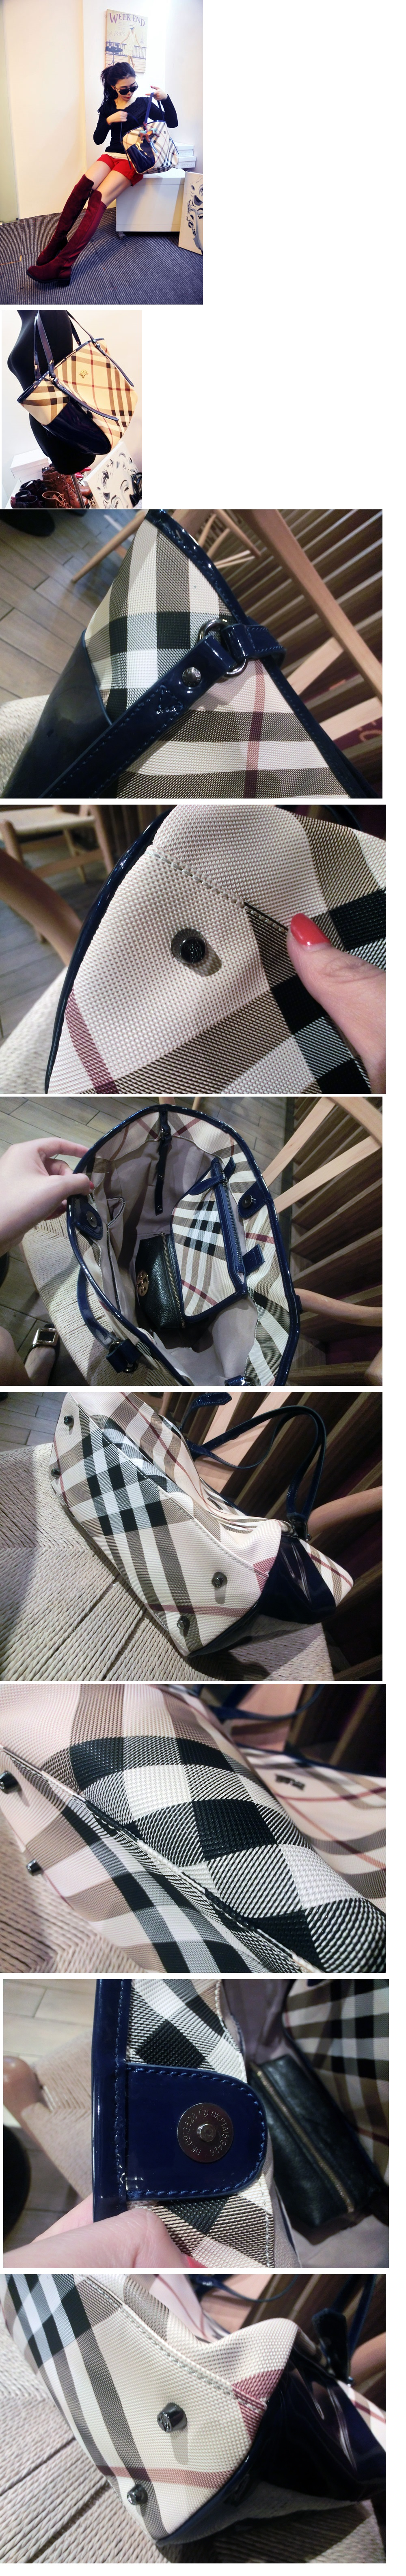 CLEARANCE HK Imported Buberry Bag